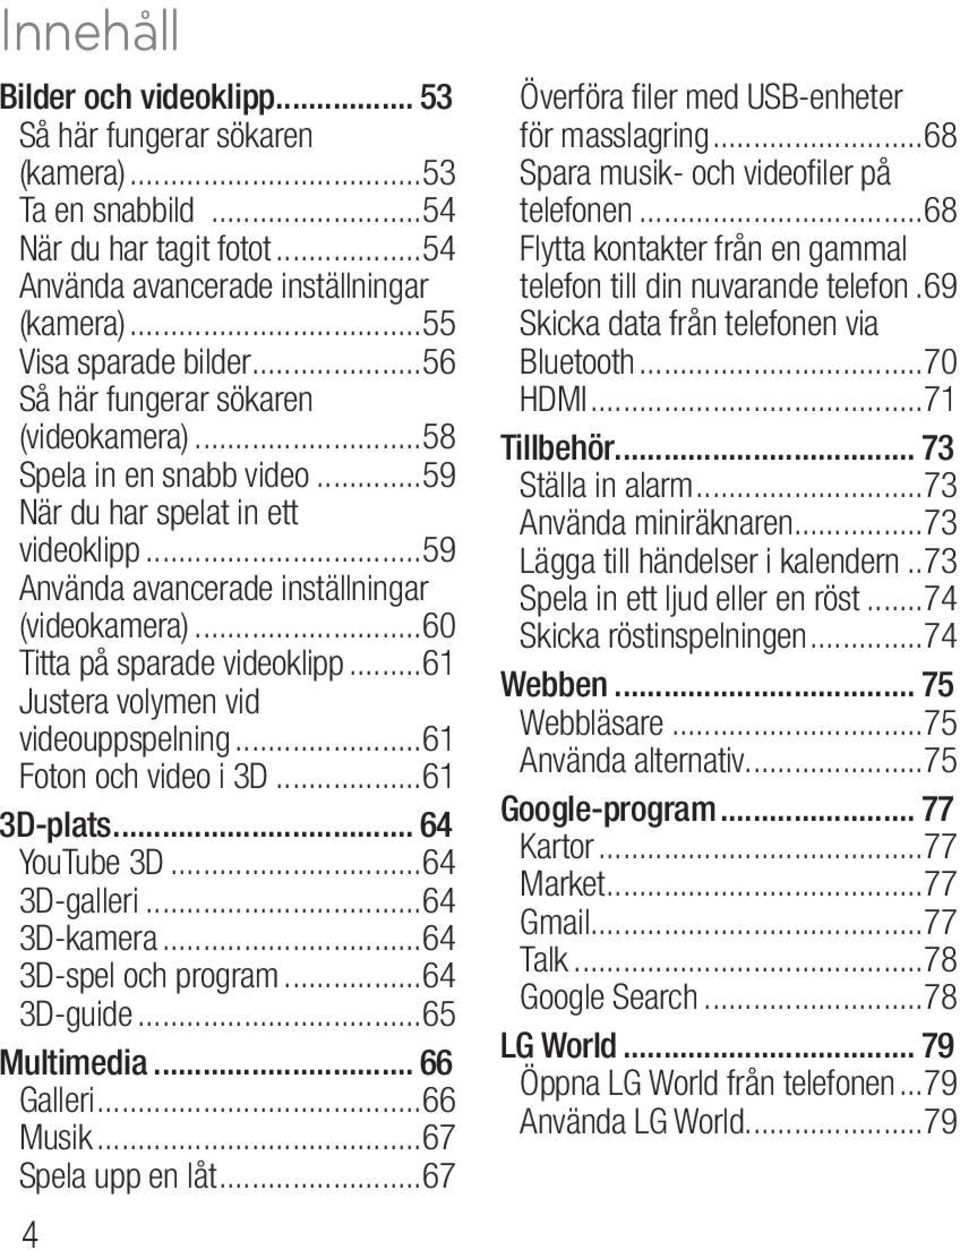 ..61 Justera volymen vid videouppspelning...61 Foton och video i 3D...61 3D-plats... 64 YouTube 3D...64 3D-galleri...64 3D-kamera...64 3D-spel och program...64 3D-guide...65 Multimedia... 66 Galleri.